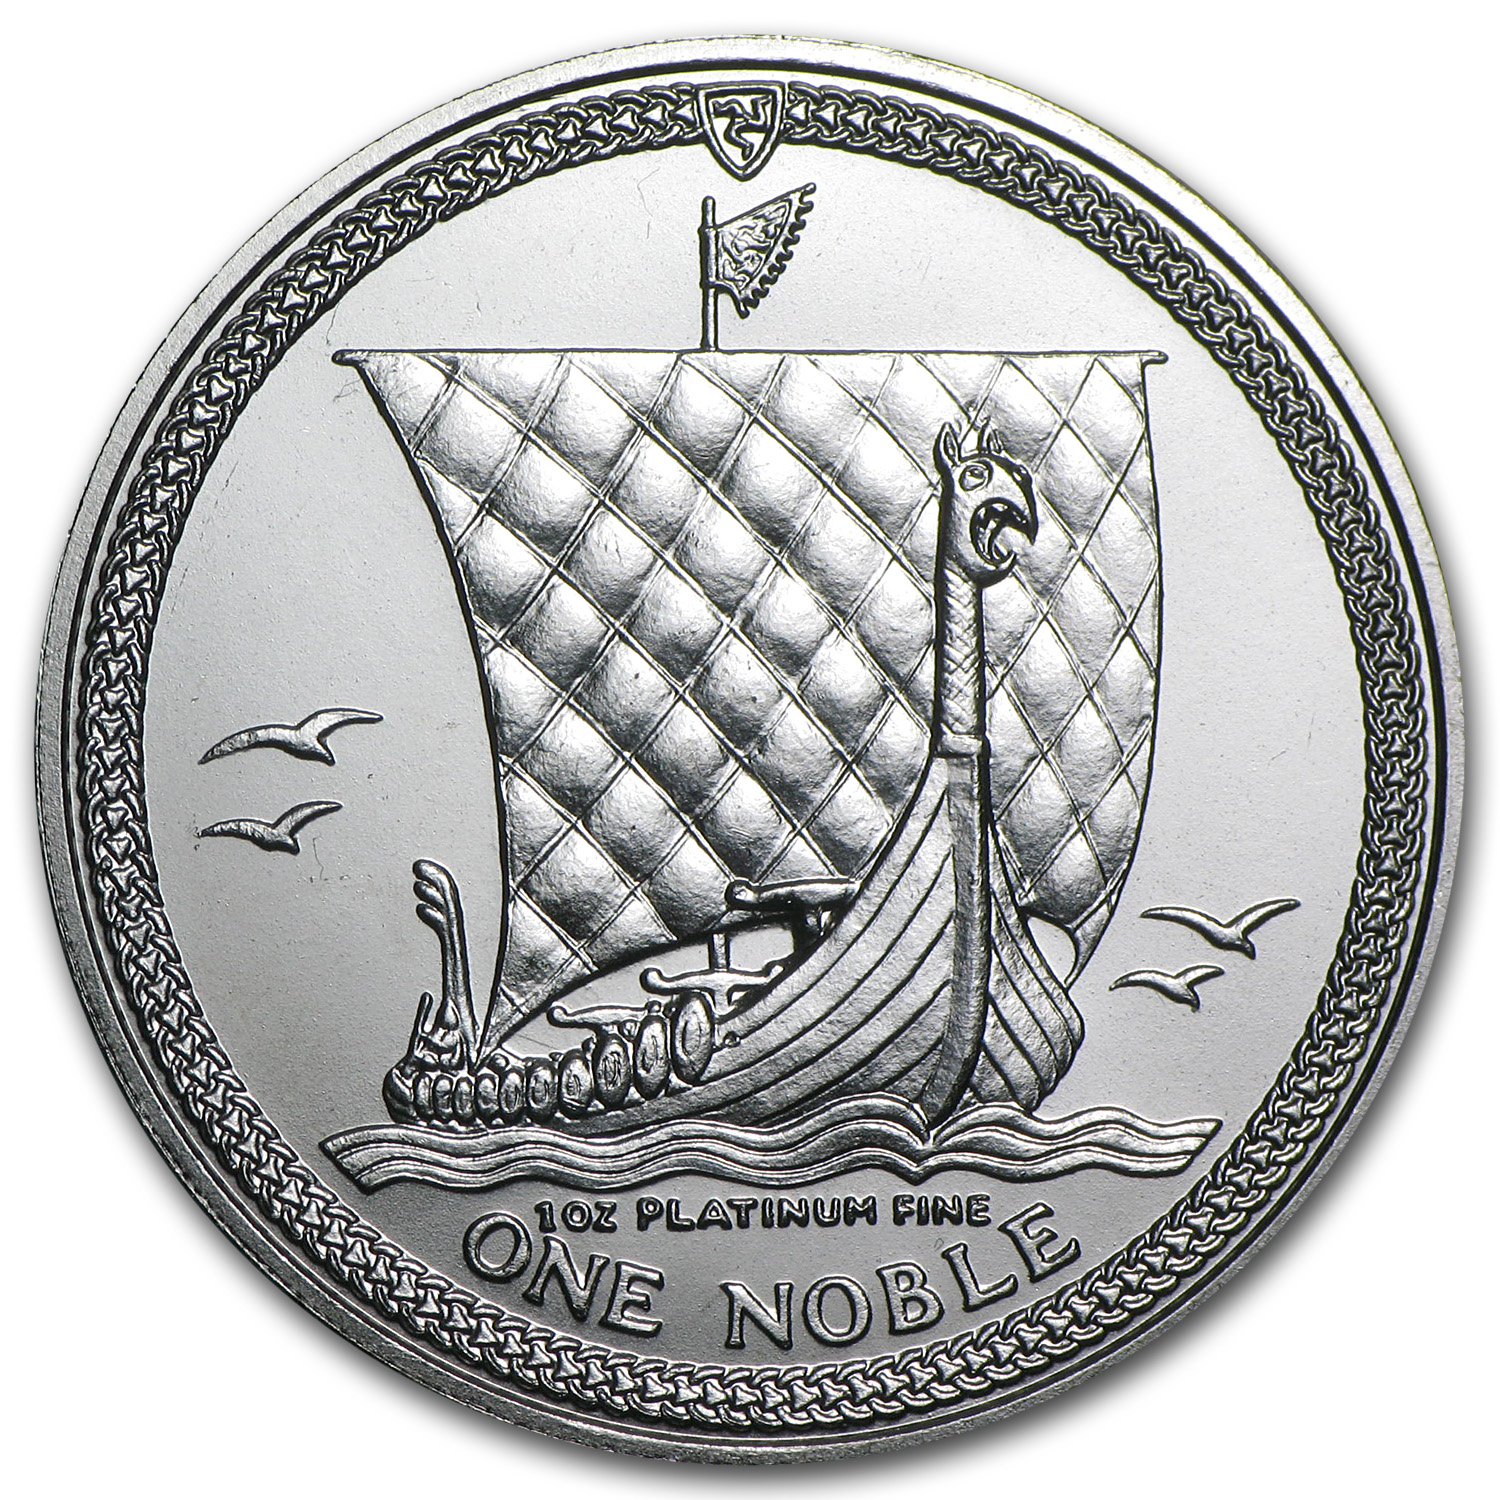 1987 Isle of Man 1 oz Platinum Noble BU or Proof